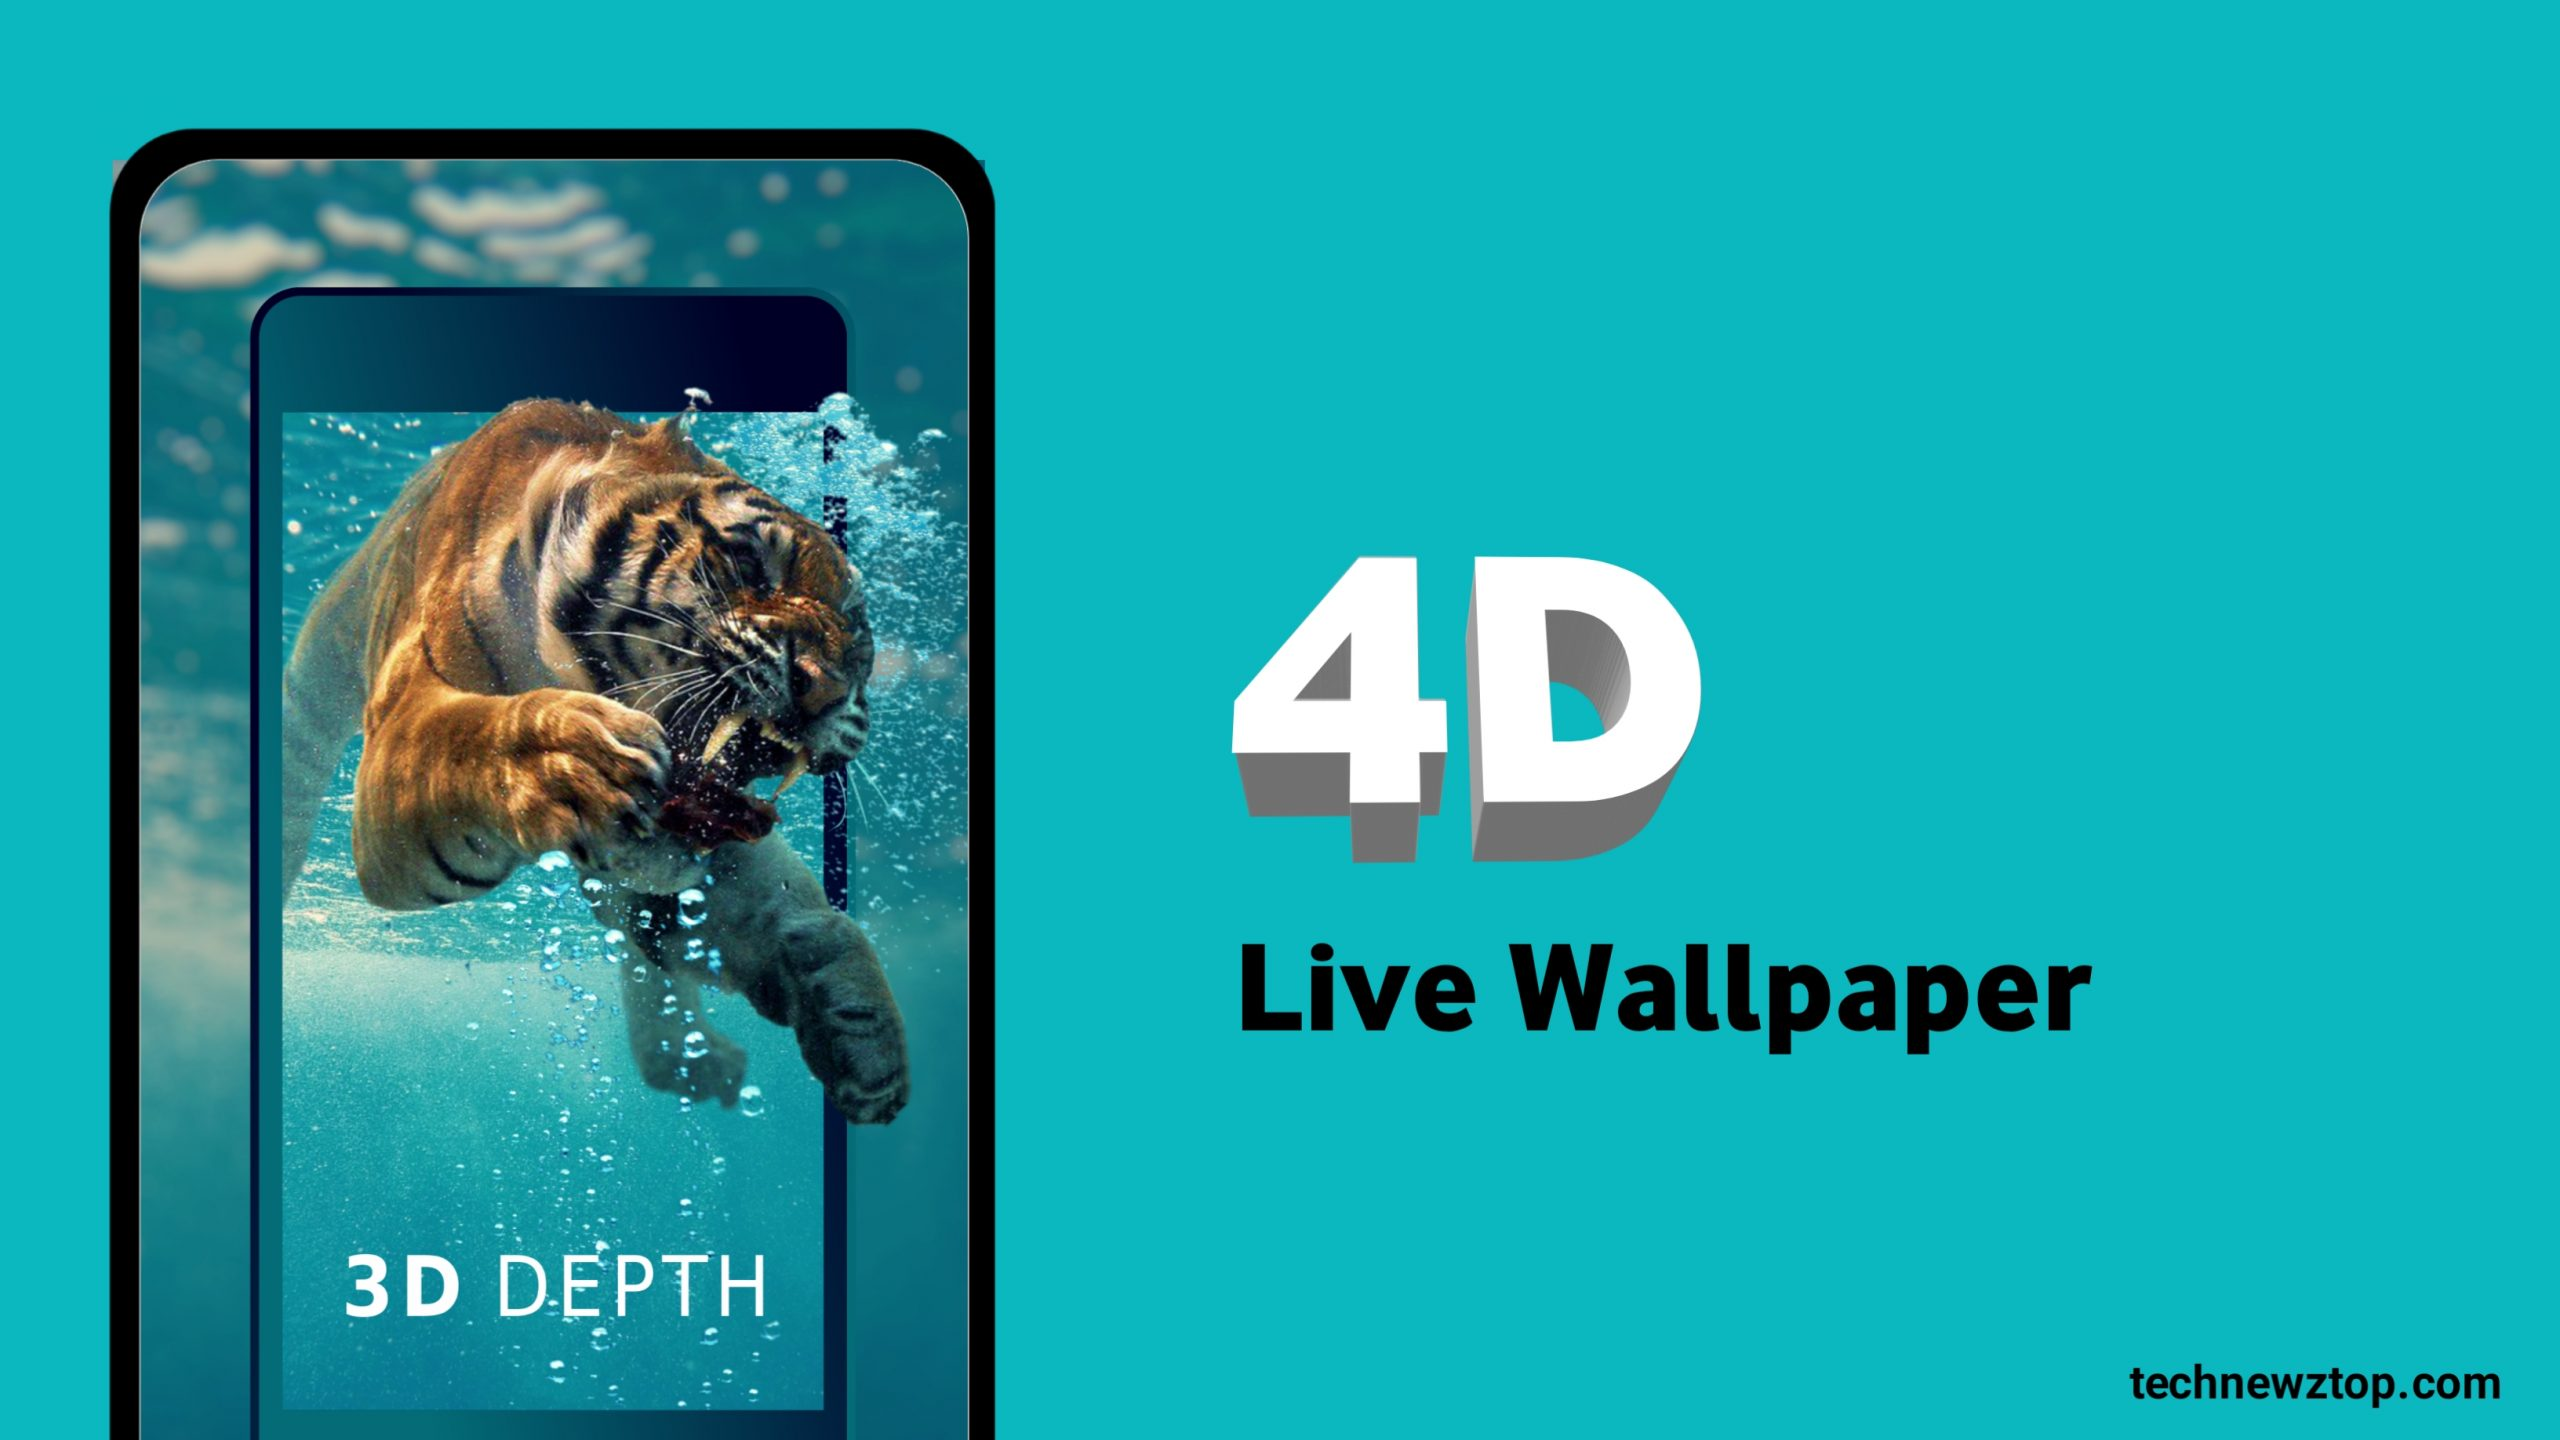 4D Live Wallpaper For Android App technewztop.com